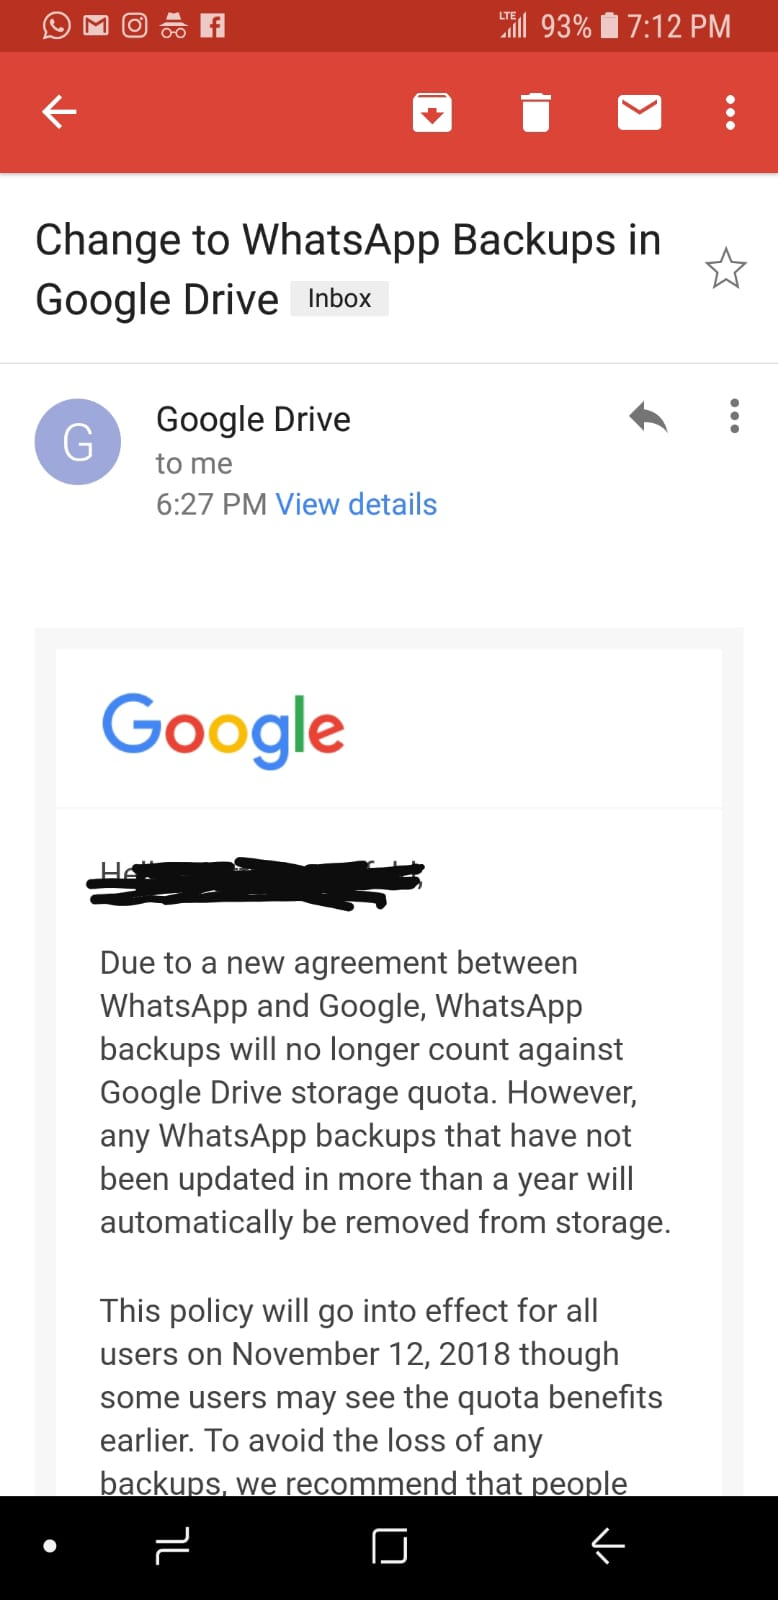 WhatsApp backups to stop counting against your Google Drive